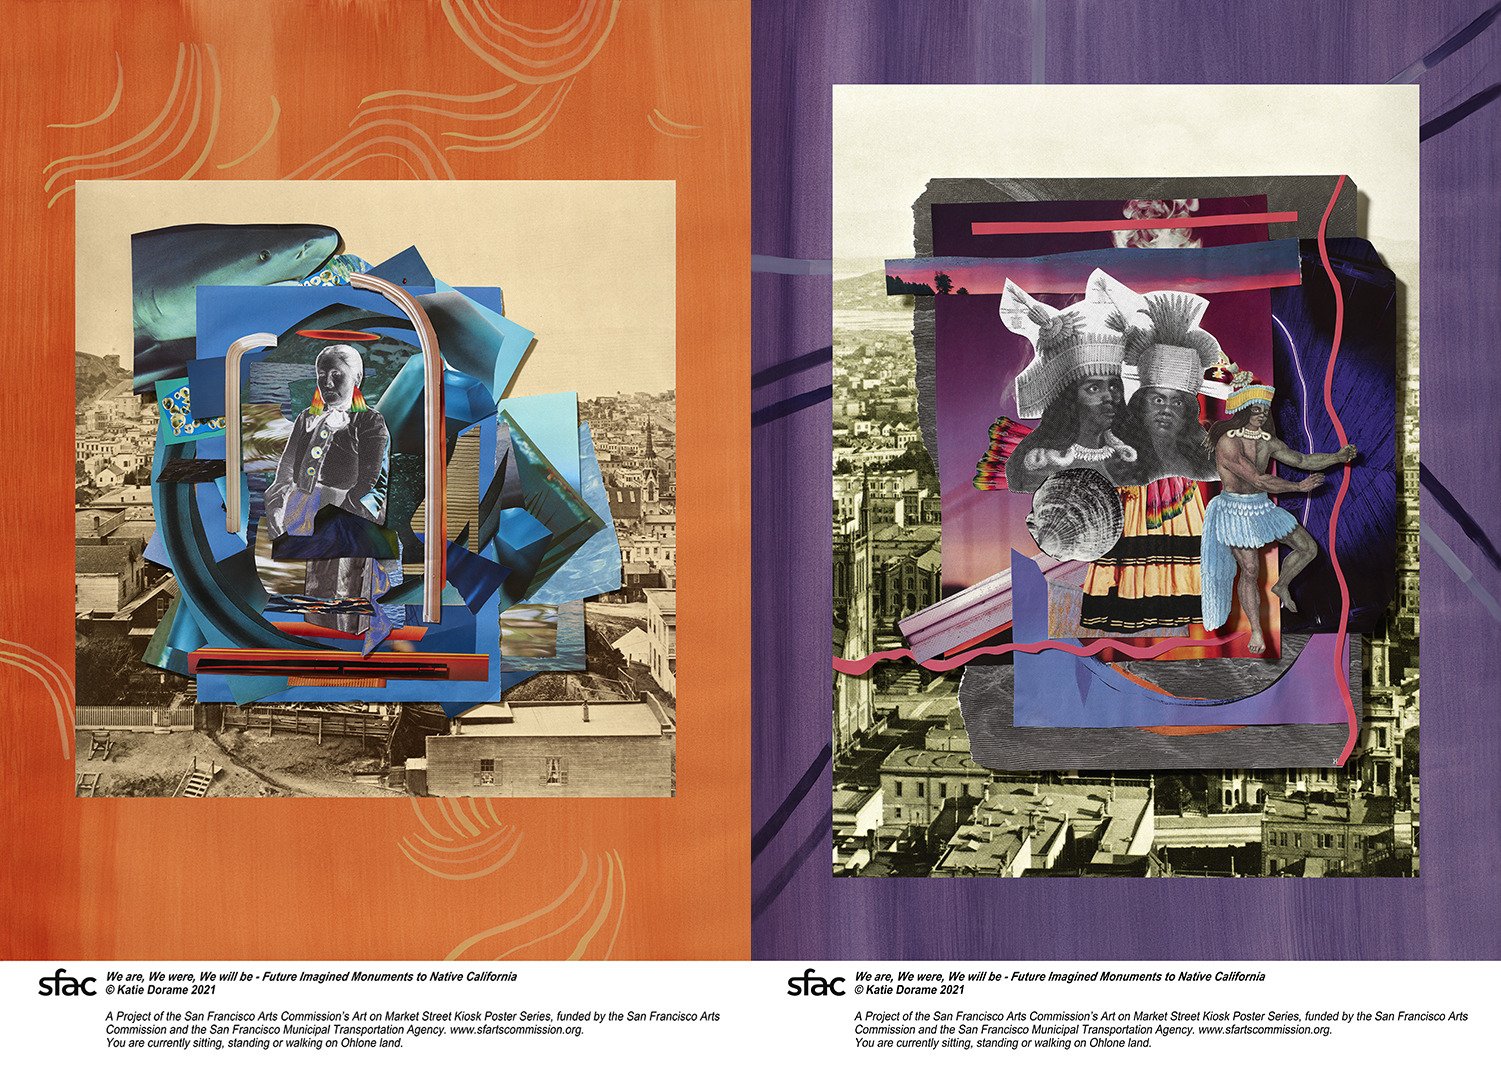 Side by side orange and purple poster with Native Californian imagery